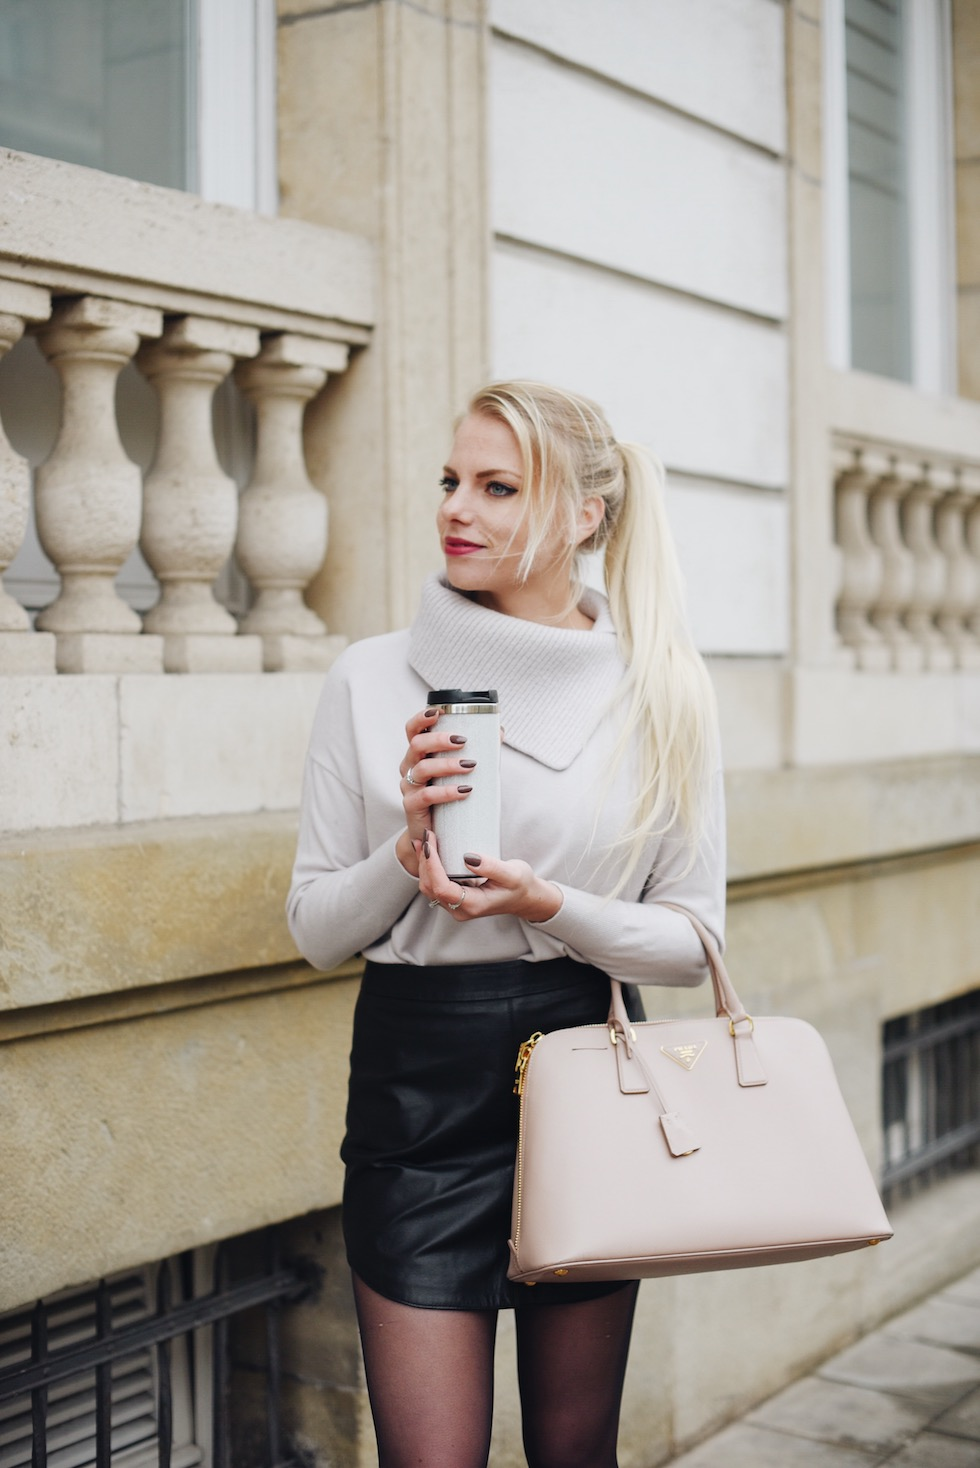 work-wear-for-winter-blogger-luxembourg-fashion-streetstyle-revolve-clothing-karen-millen-sweater-seaside-shoes.jpg